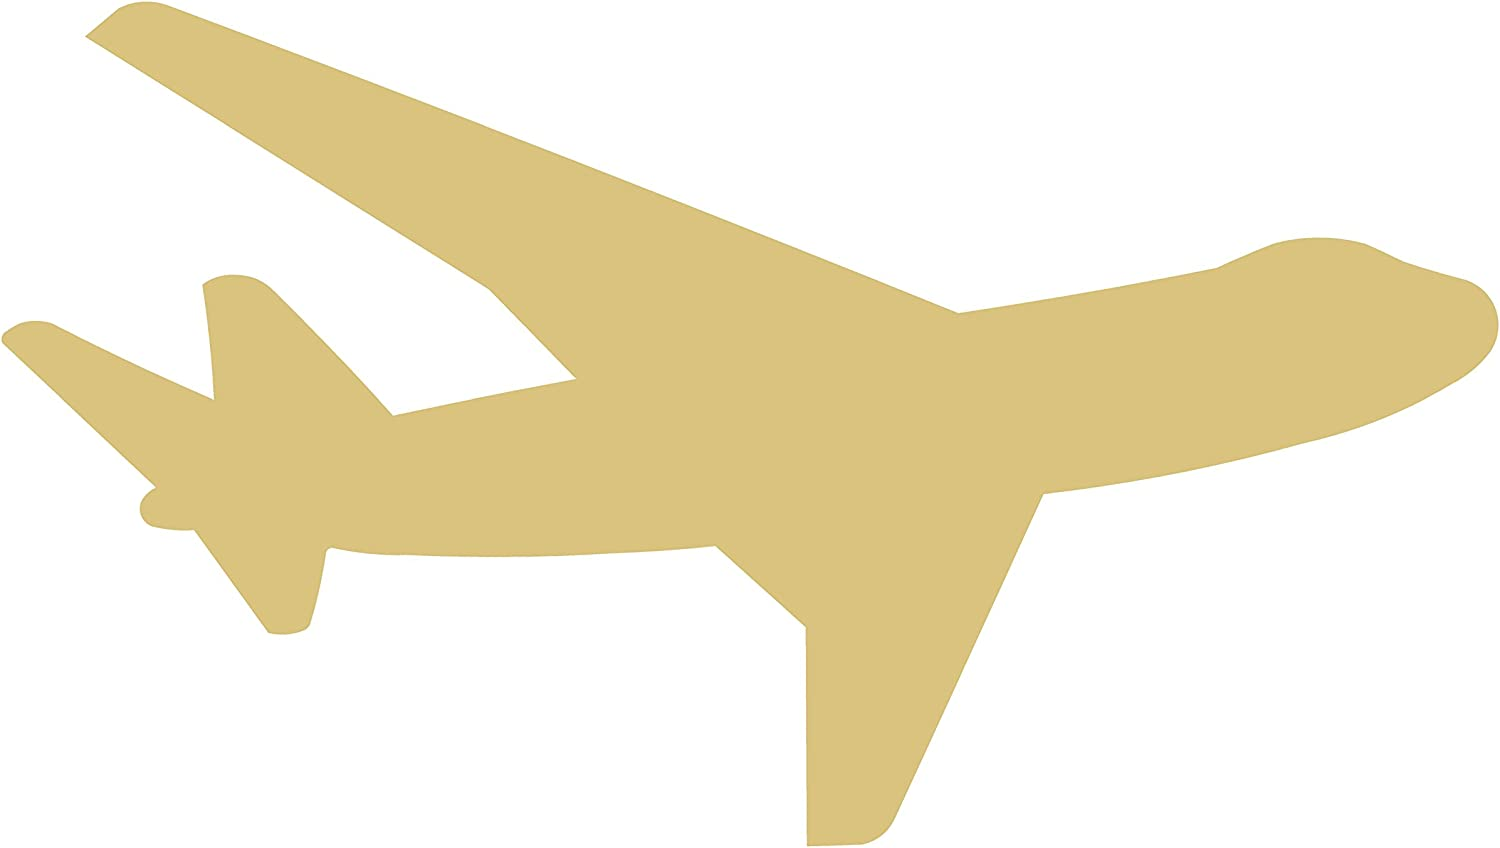 Many Sizes Available Airplane 003 Unfinished Wooden Cutout for Crafting Home /& Room D\u00e9cor and other DIY projects